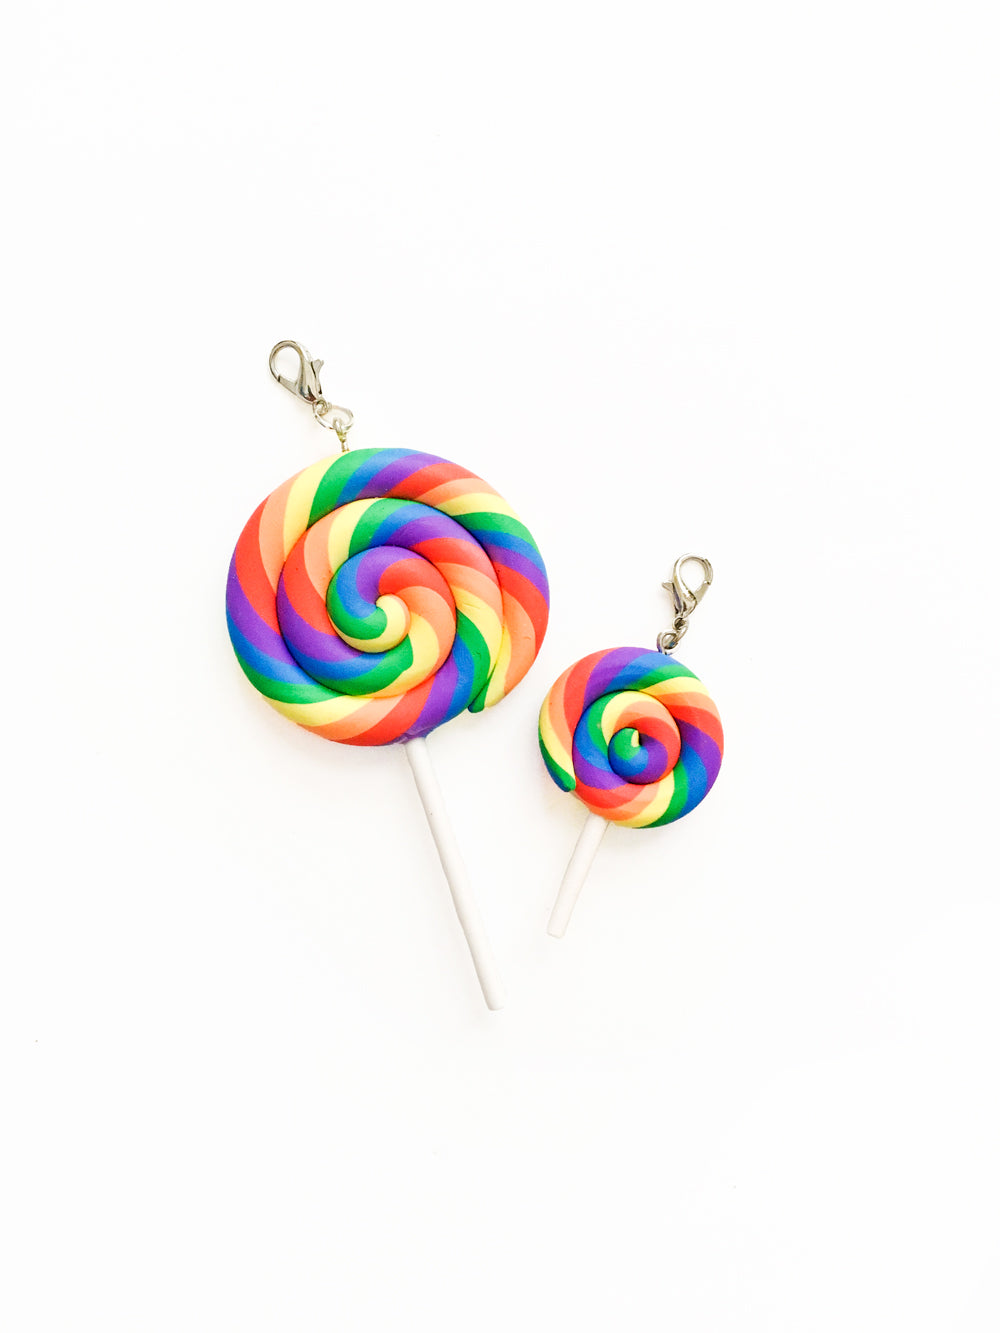 Rainbow LGBT Lollipop Zipper Pull Gift Set